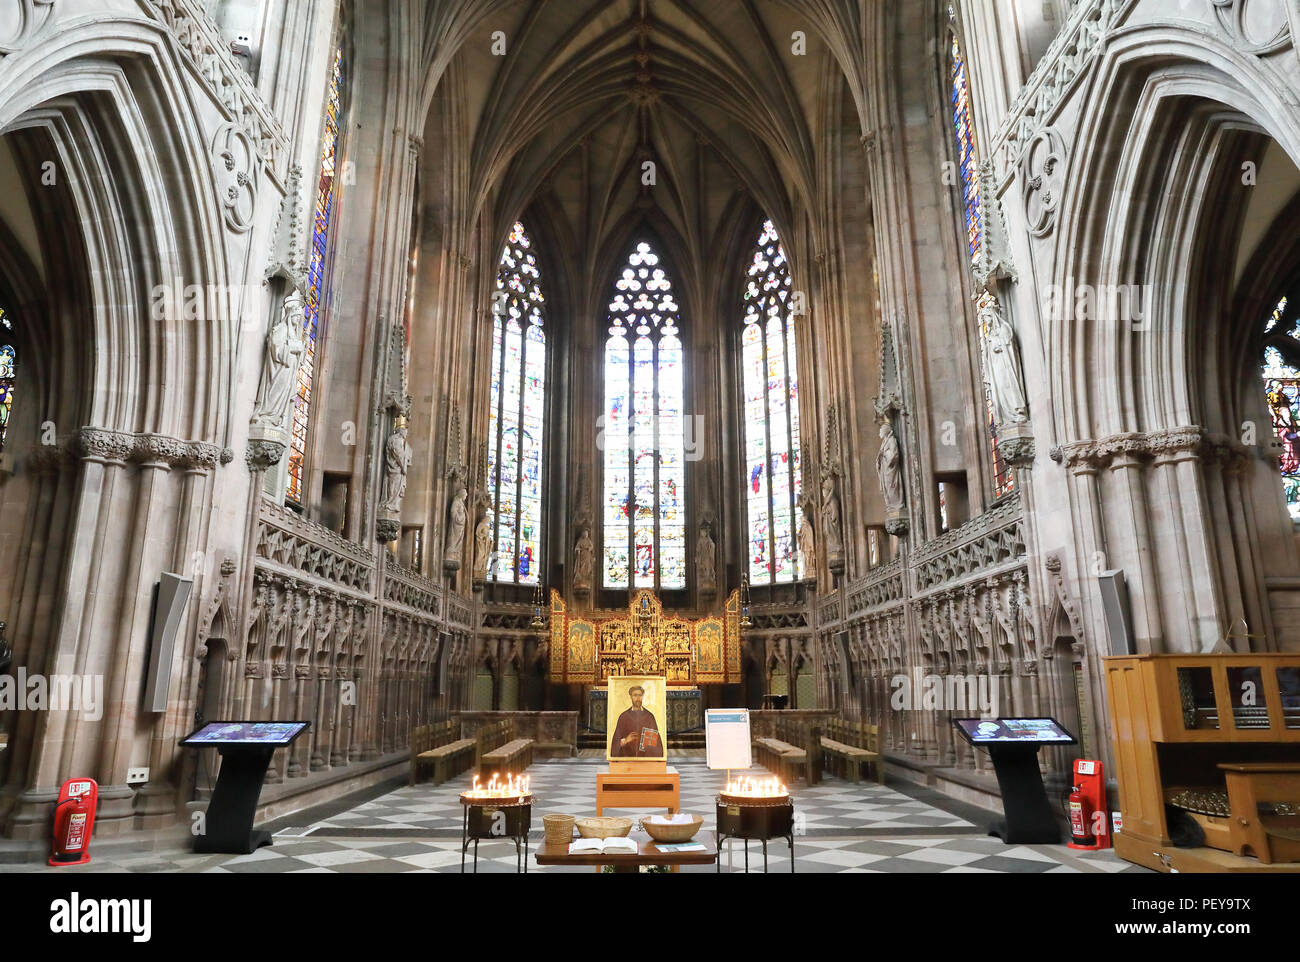 Interior of the medieval Cathedral in Lichfield, in the heart of Staffordshire, just north of Birmingham, England, UK - Stock Image